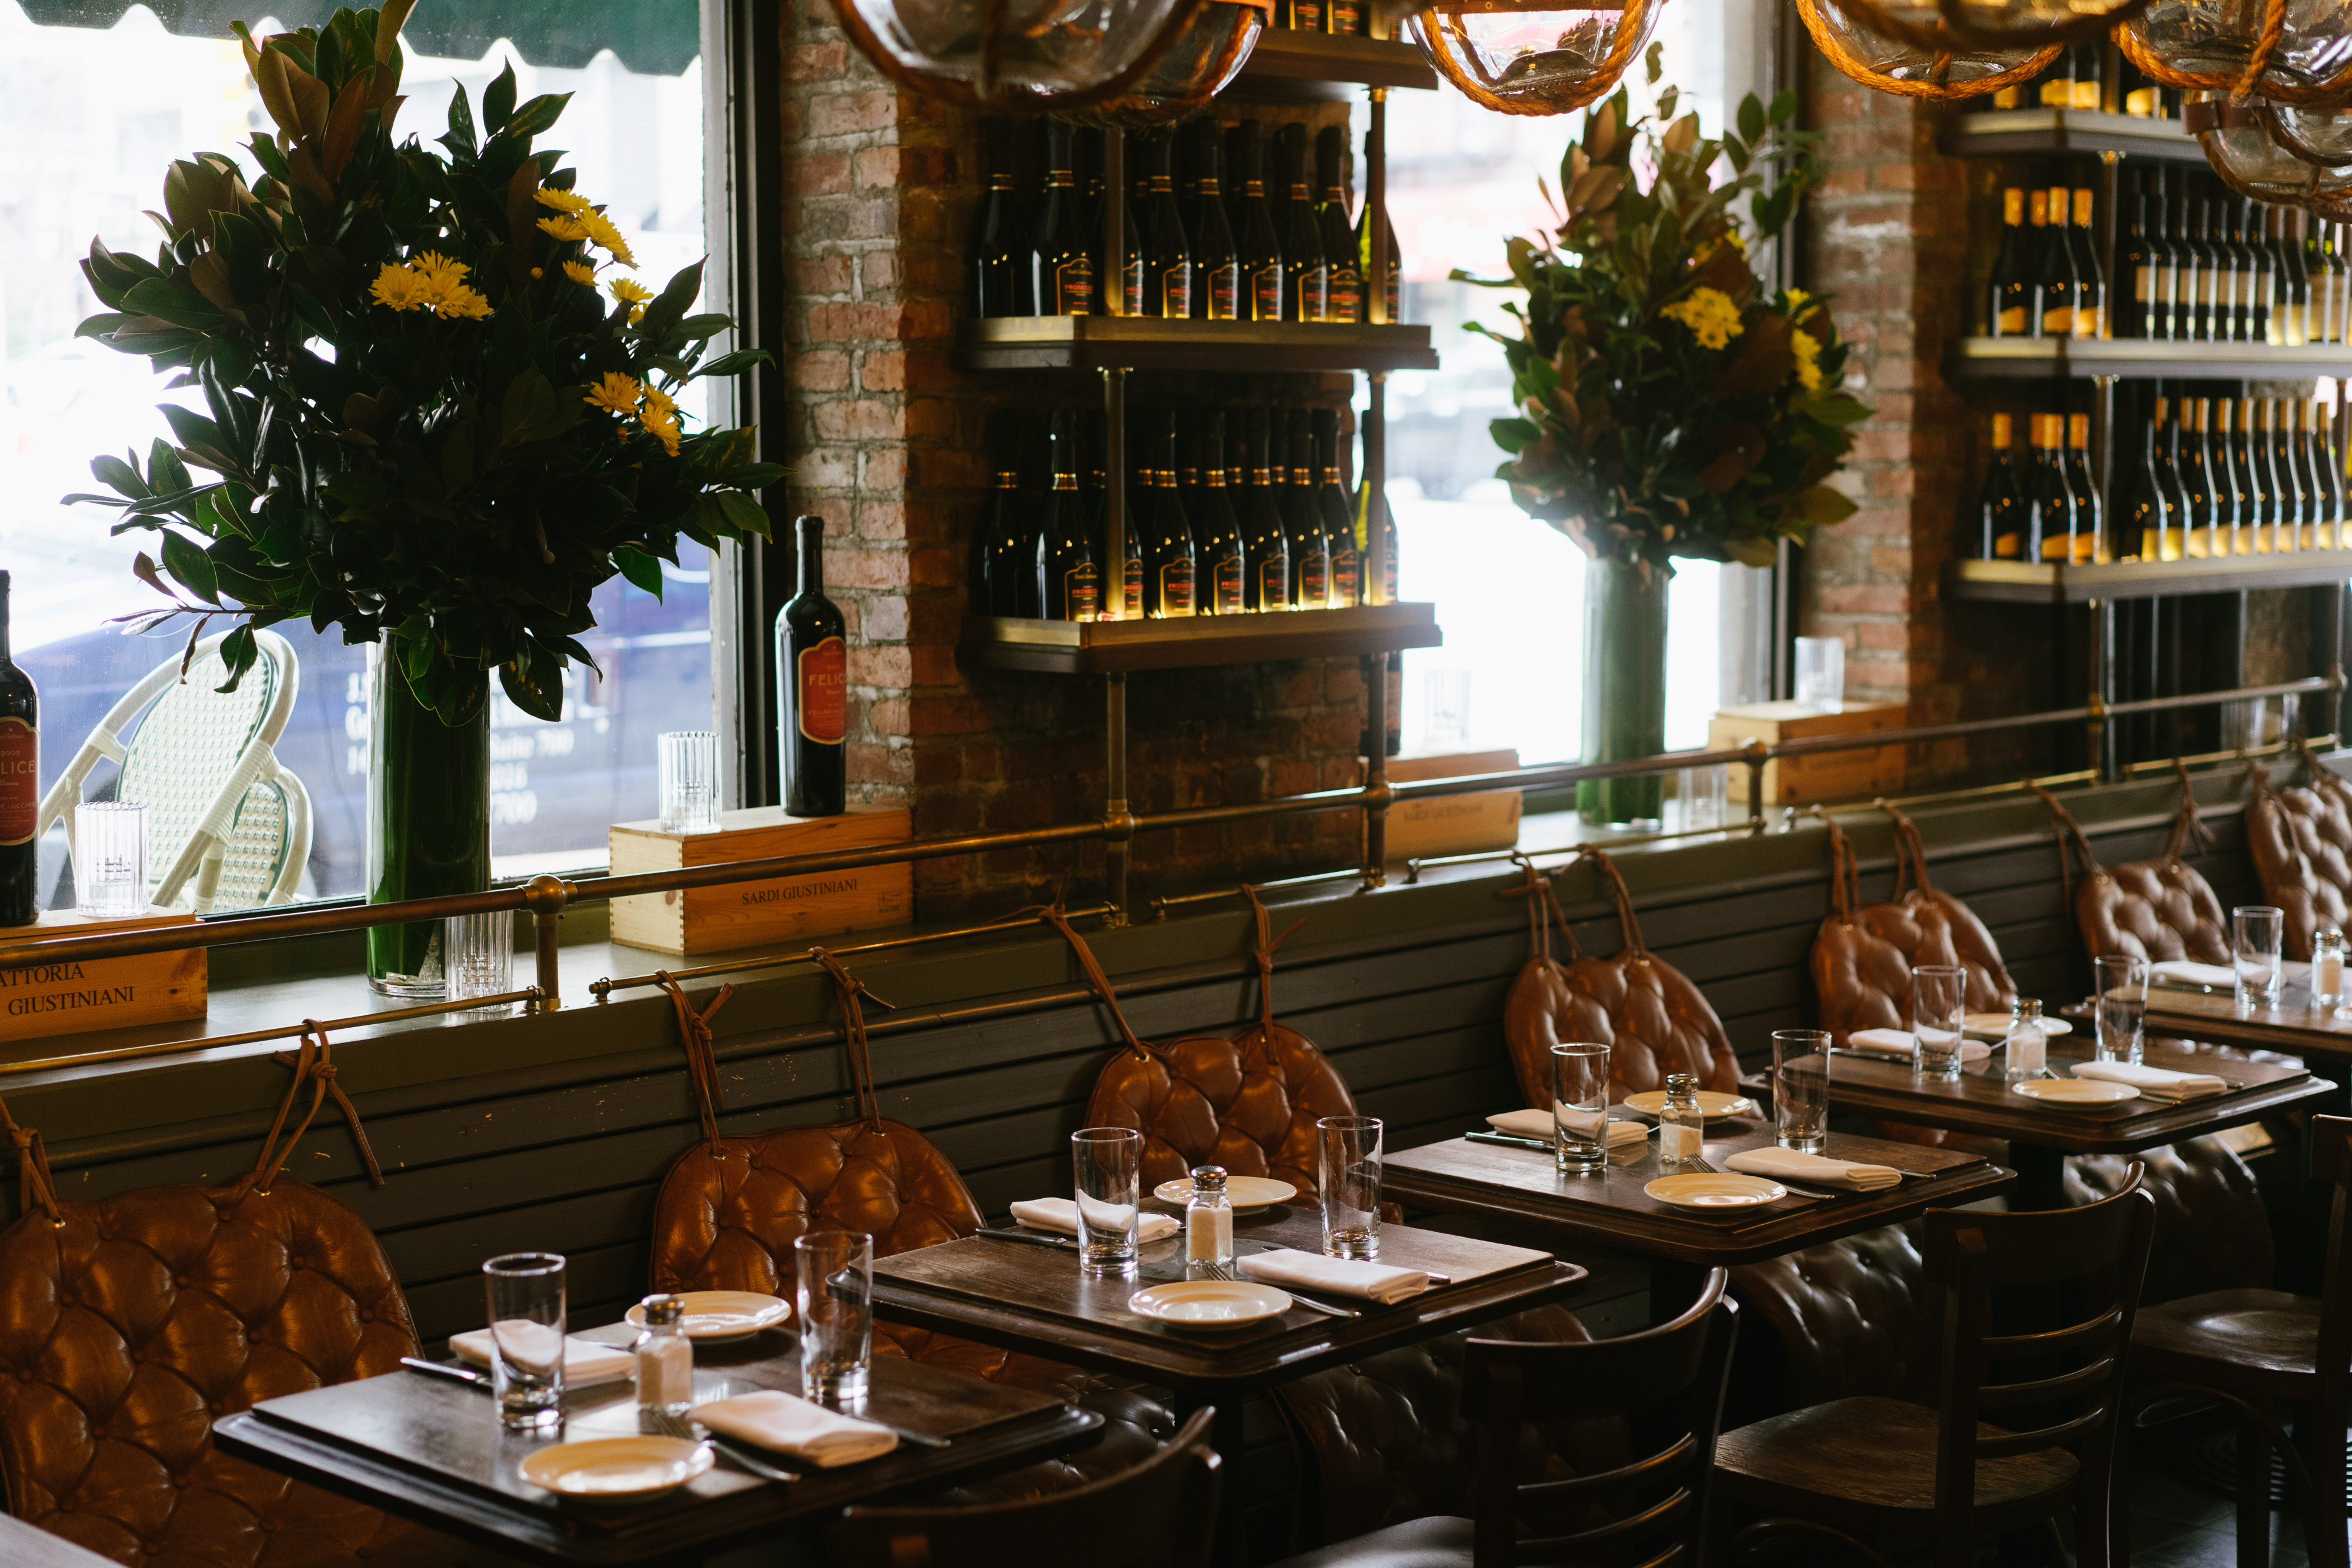 The Best Date Night Restaurants On The Upper East Side